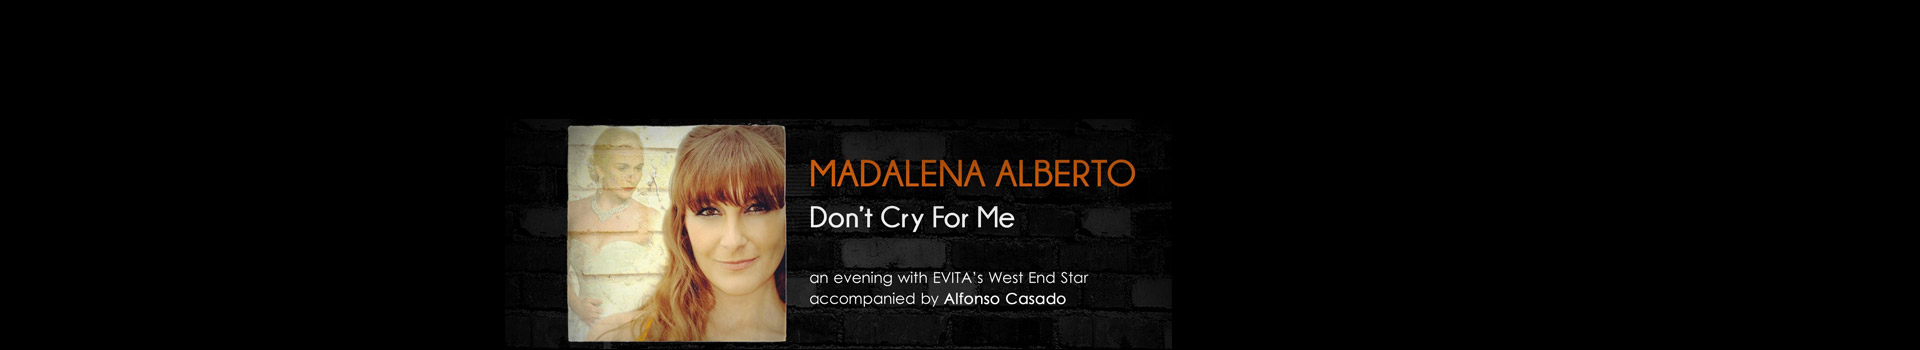 Madalena Alberto: Don't Cry For Me banner image